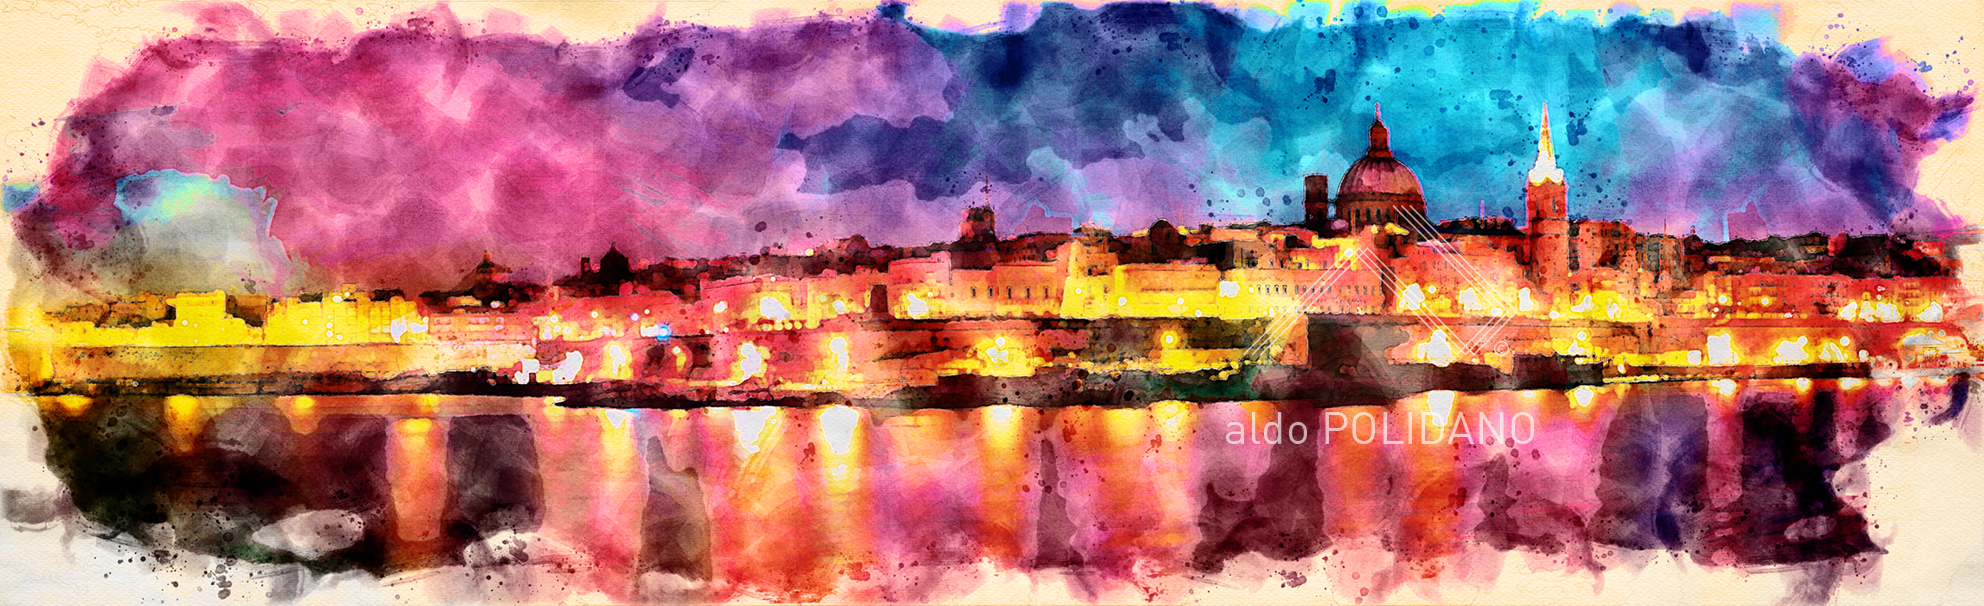 VALLETTA Panoramic Aldo•••ABSTRACT ART c